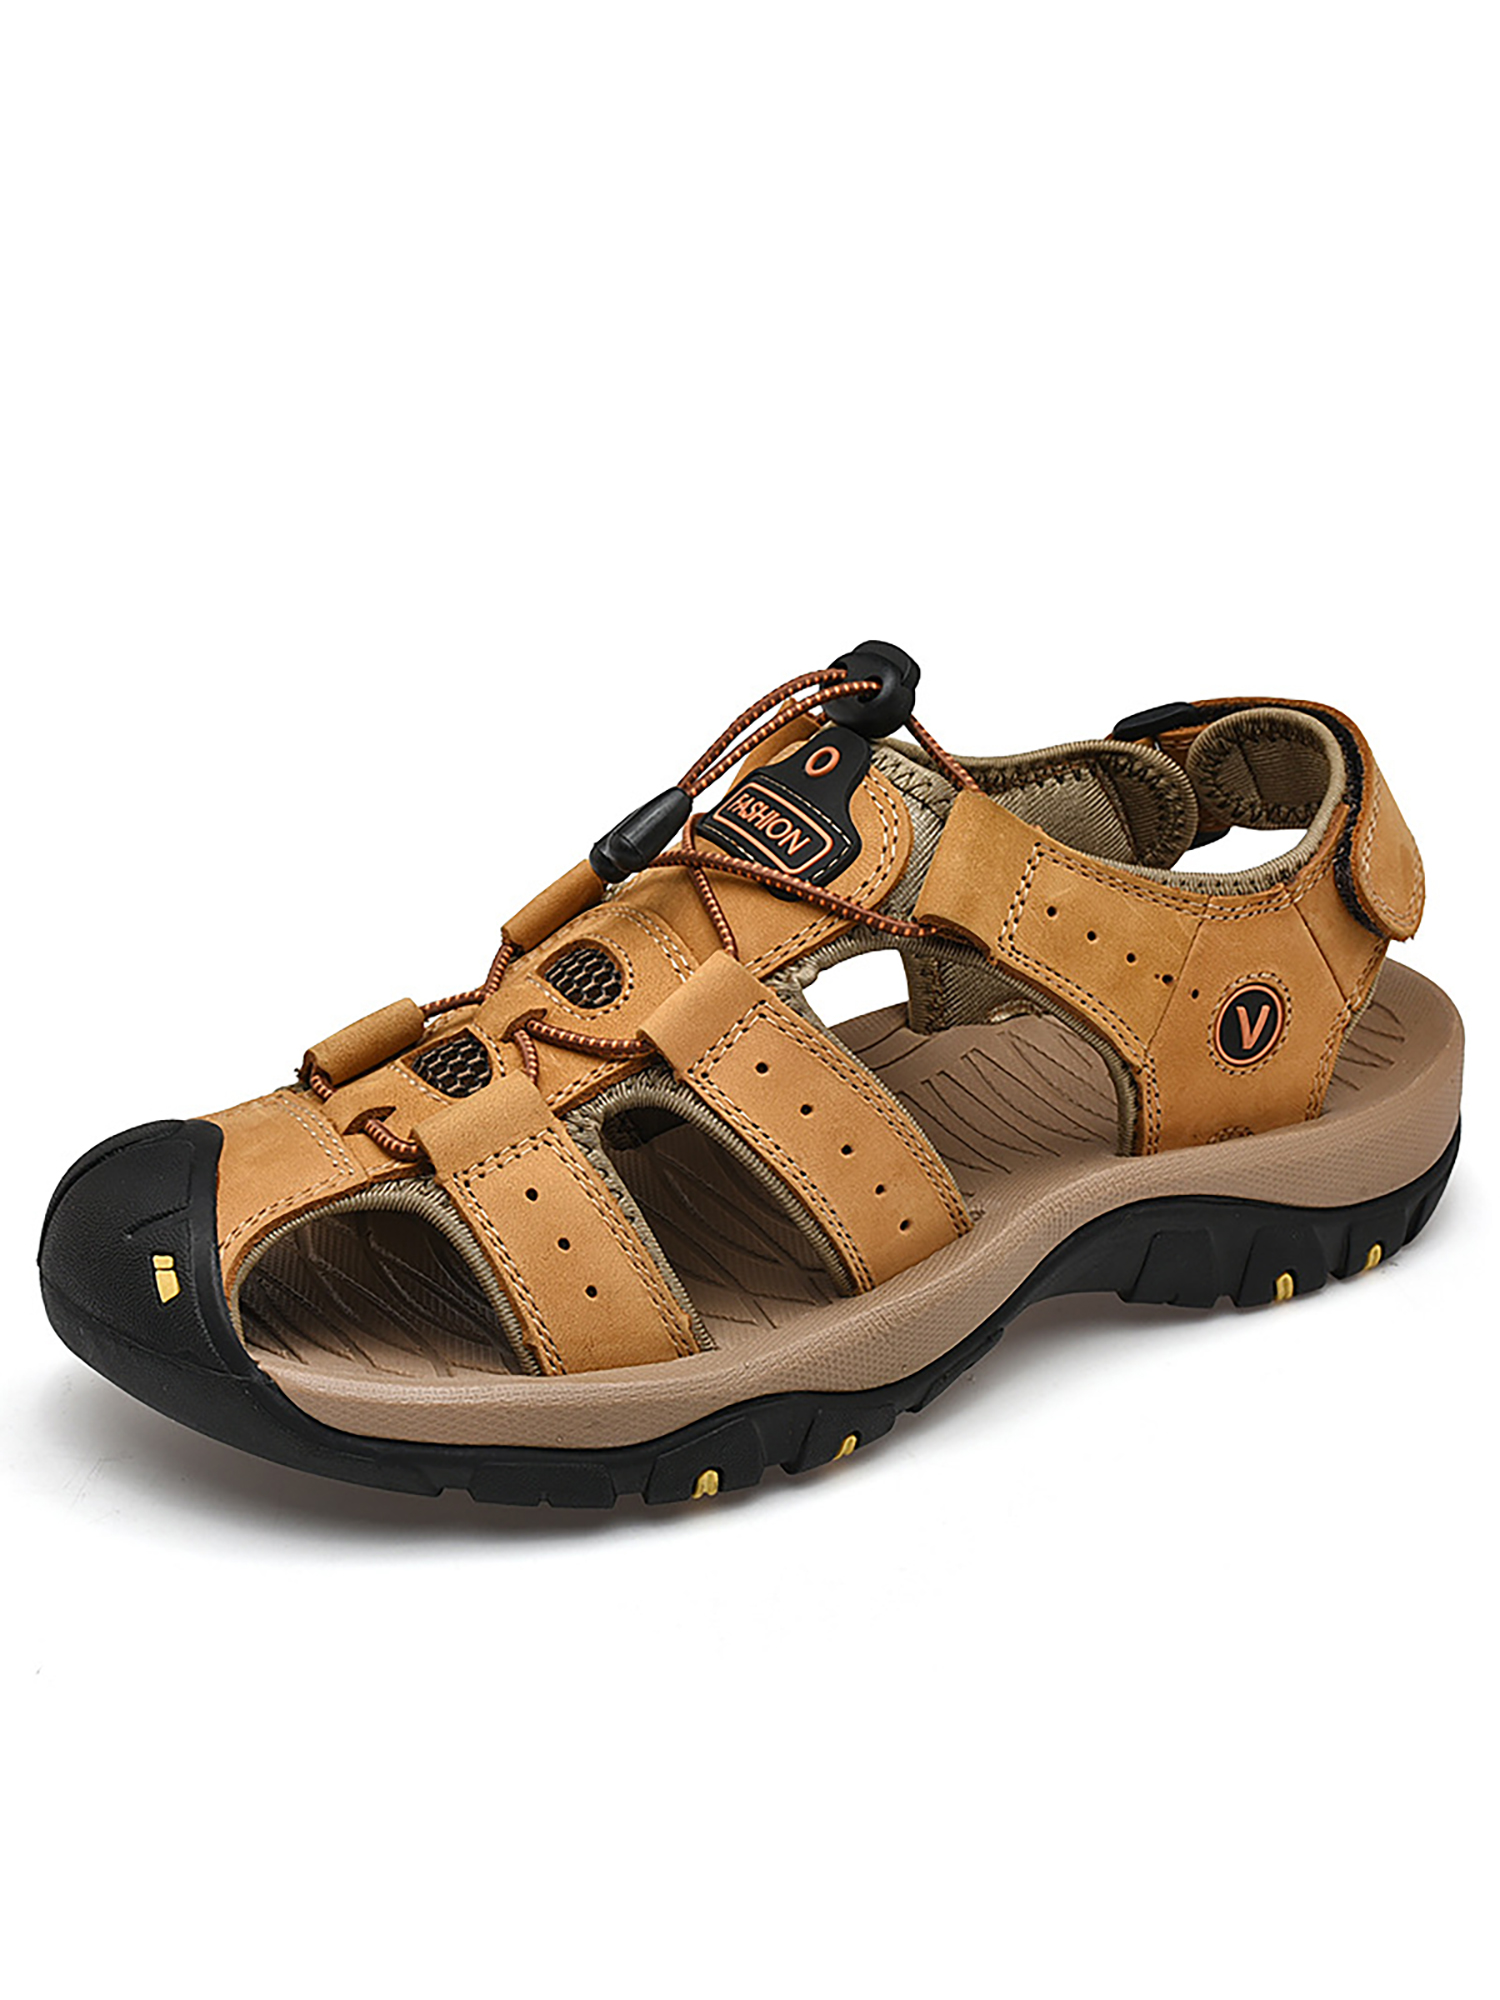 Men's Closed-toe Hiking Fisherman Sport Outdoor Summer Sandals Beach Water Shoes